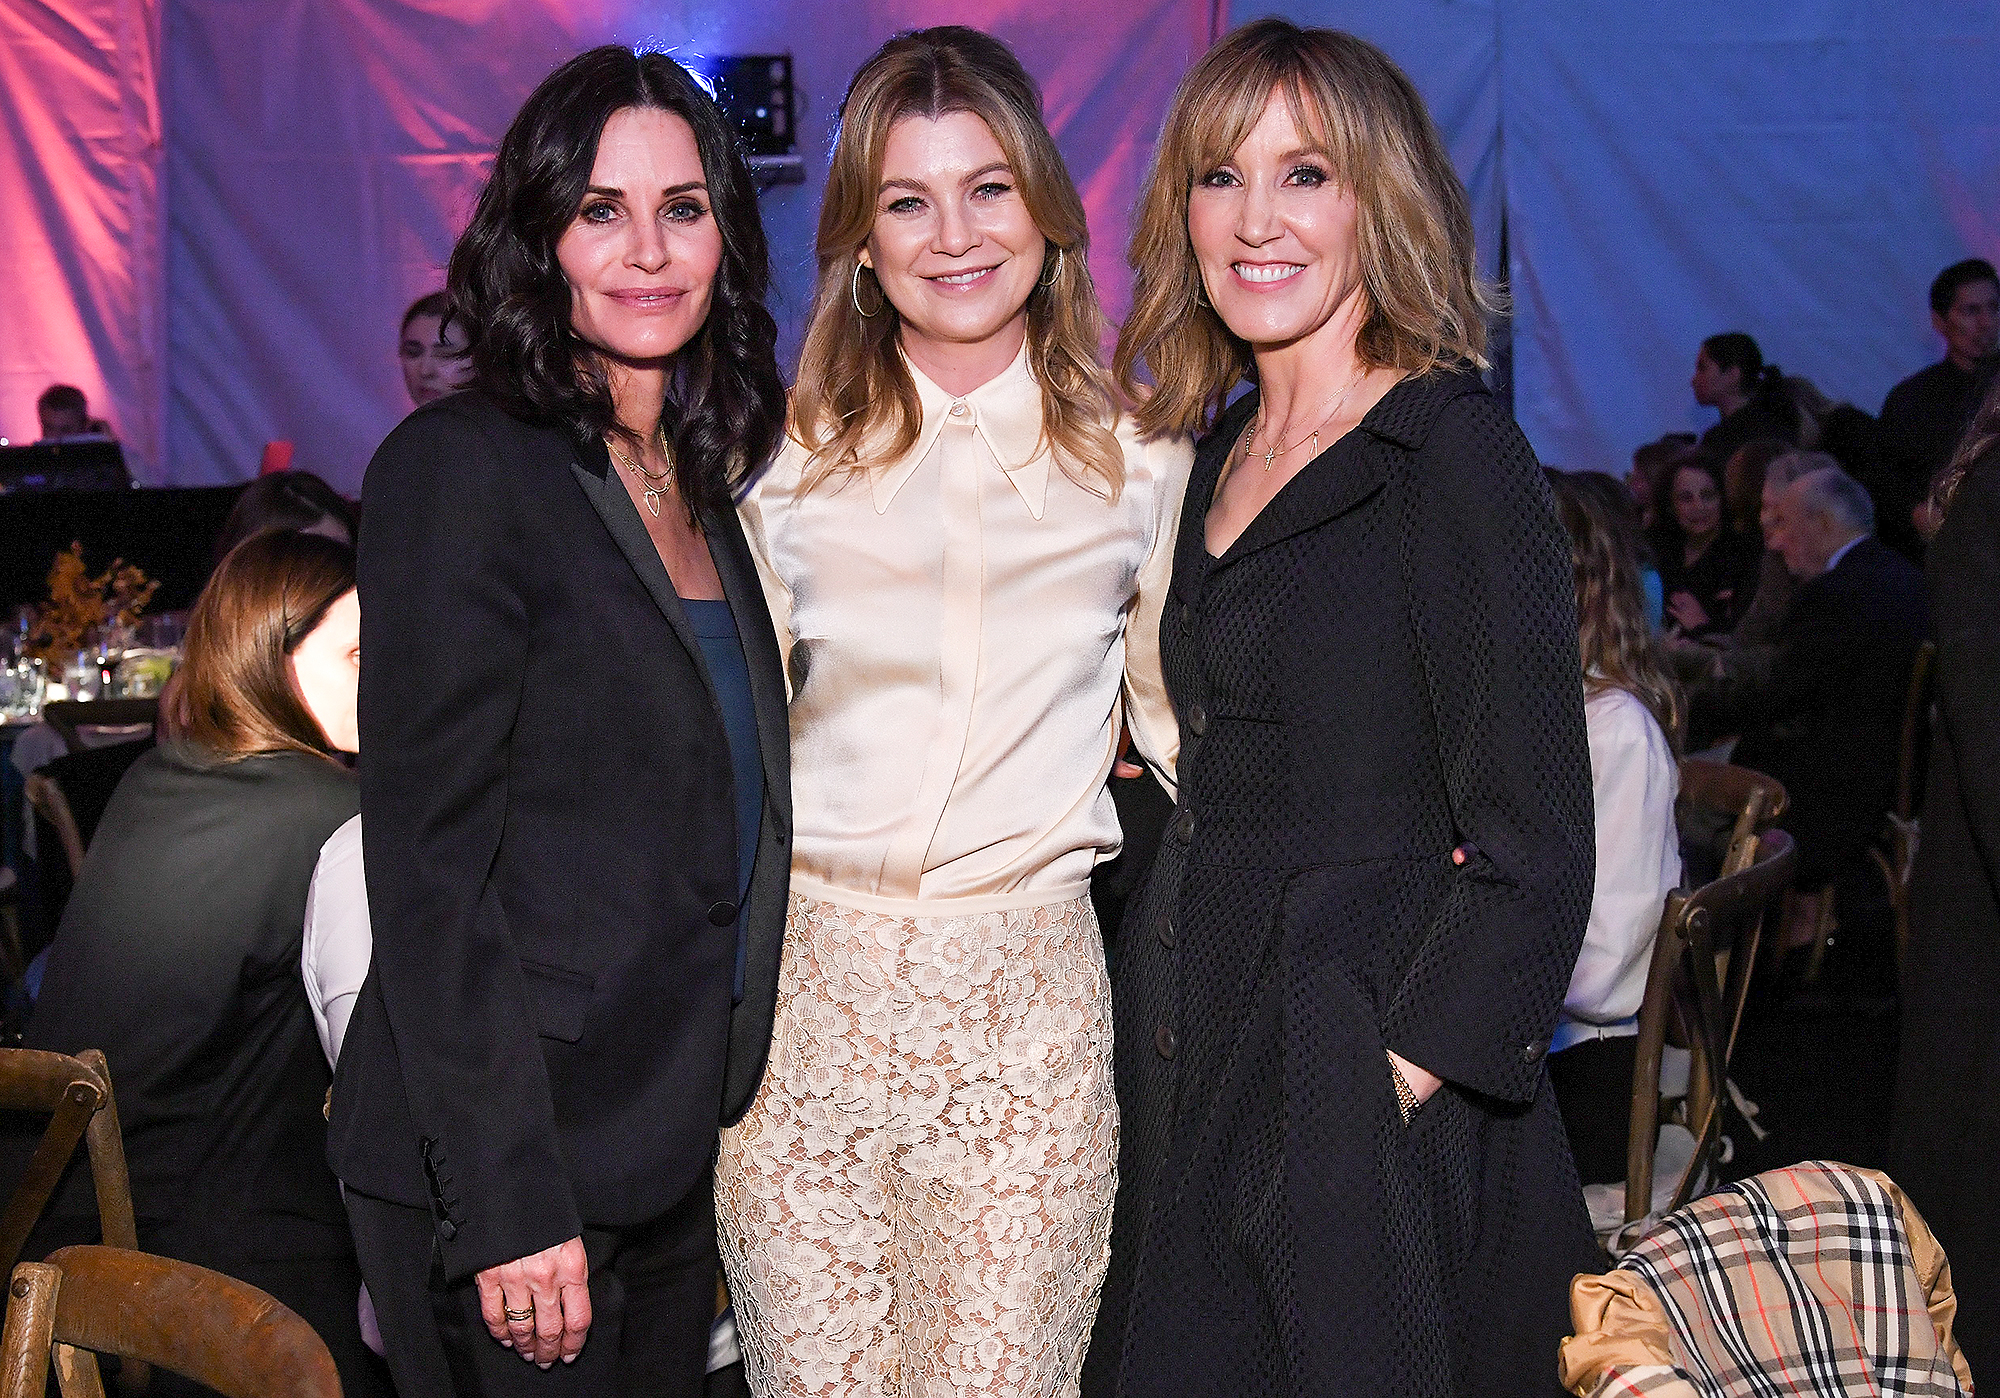 UCLA's Institute of the Environment and Sustainability Gala, Inside, Los Angeles, USA - 22 Mar 2018